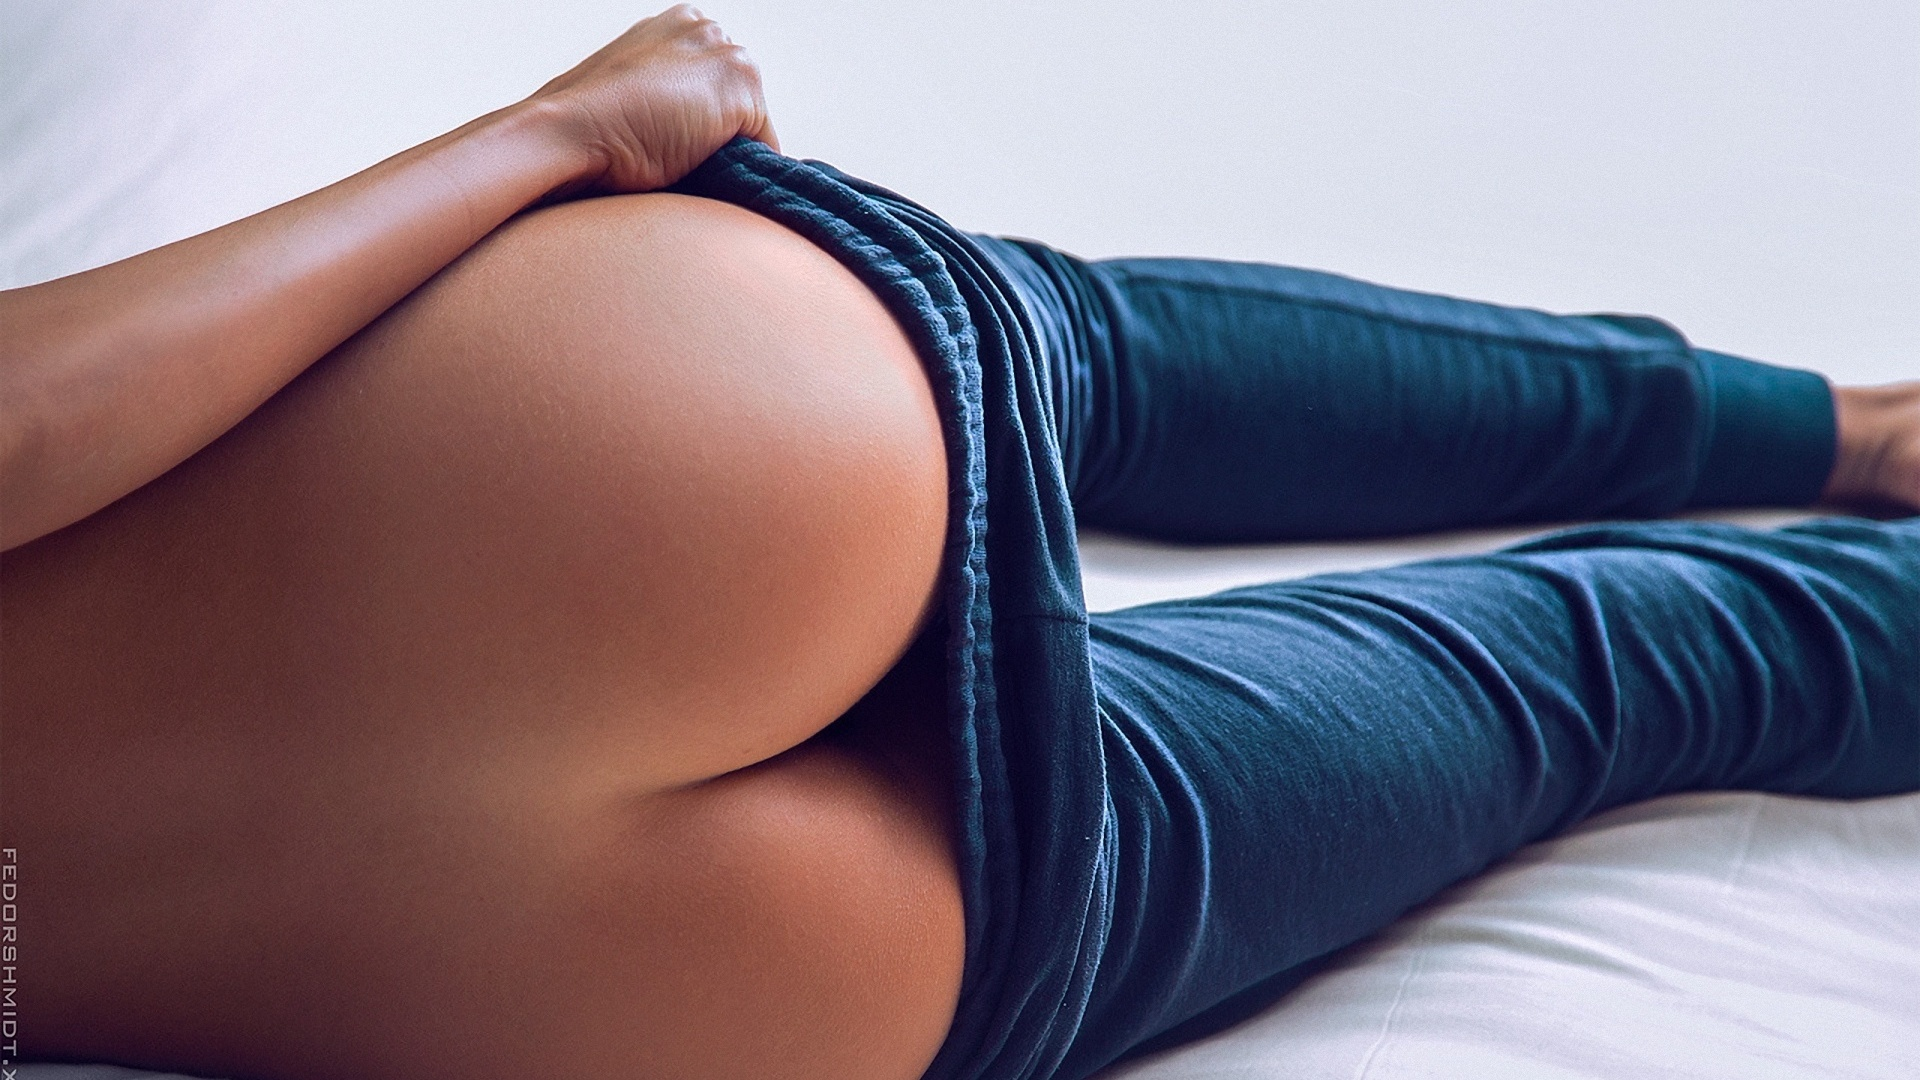 female-butt-gallery-sexy-bitch-wallpaper